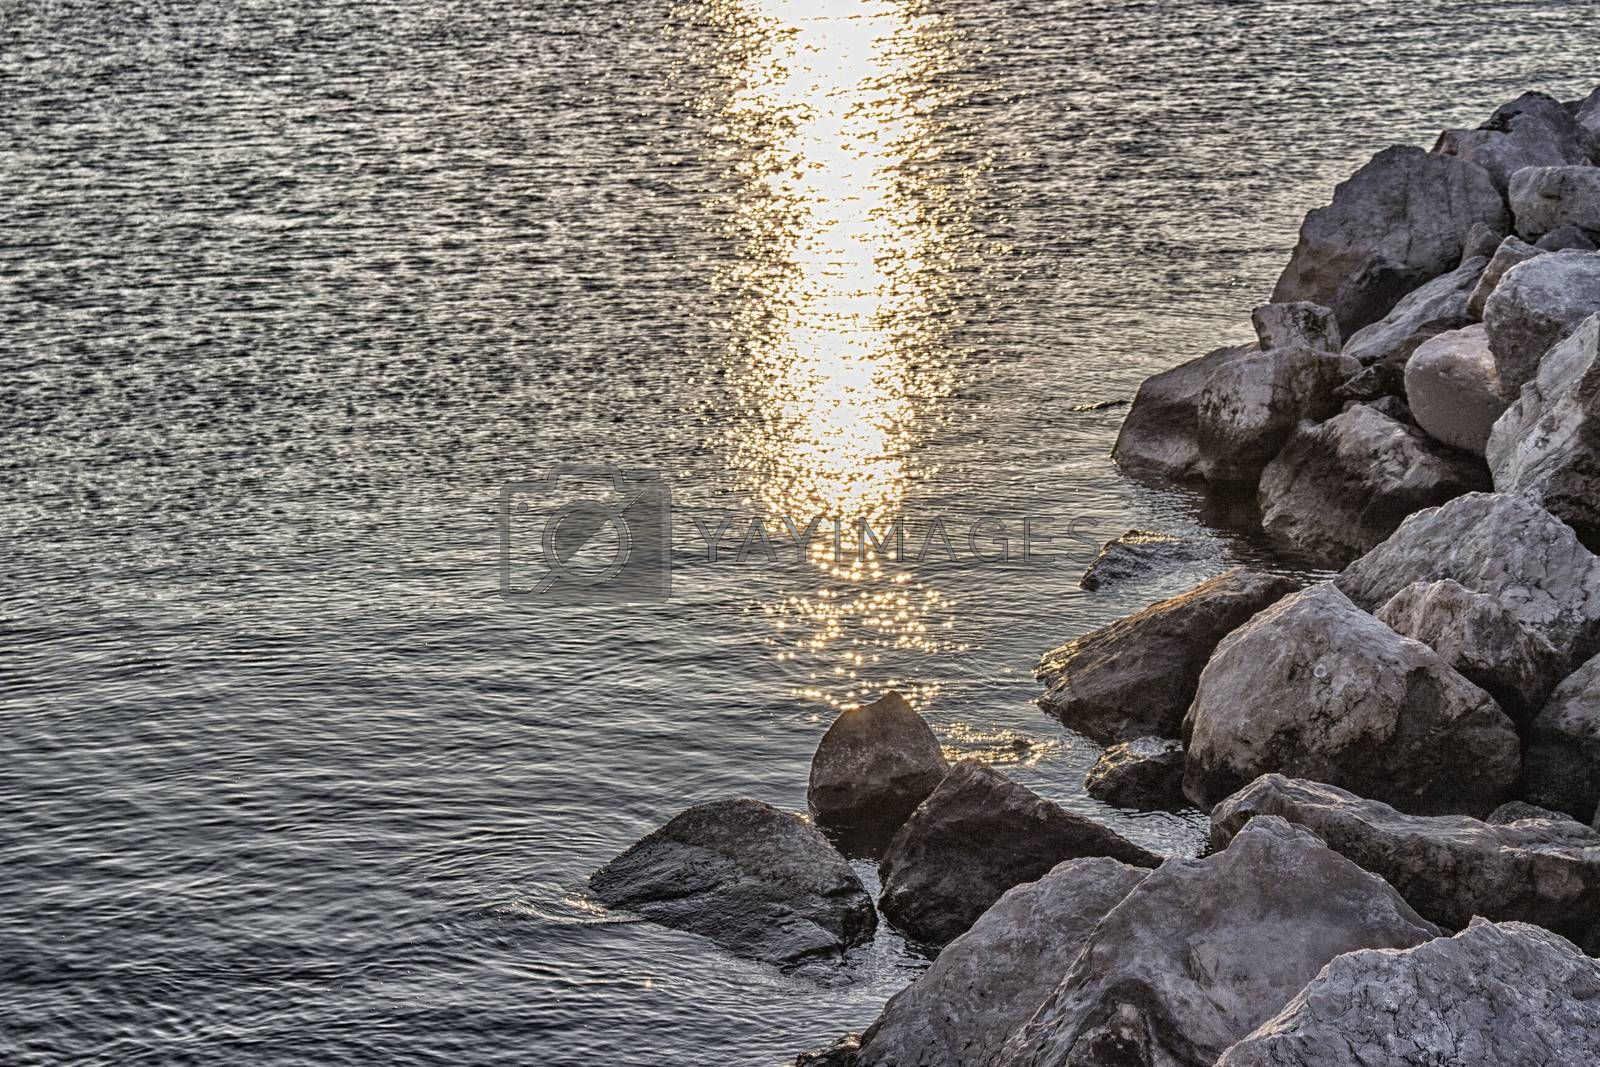 Rocks in front of the harbour channel of Cervia in Northern Italy on the Adriatic Sea